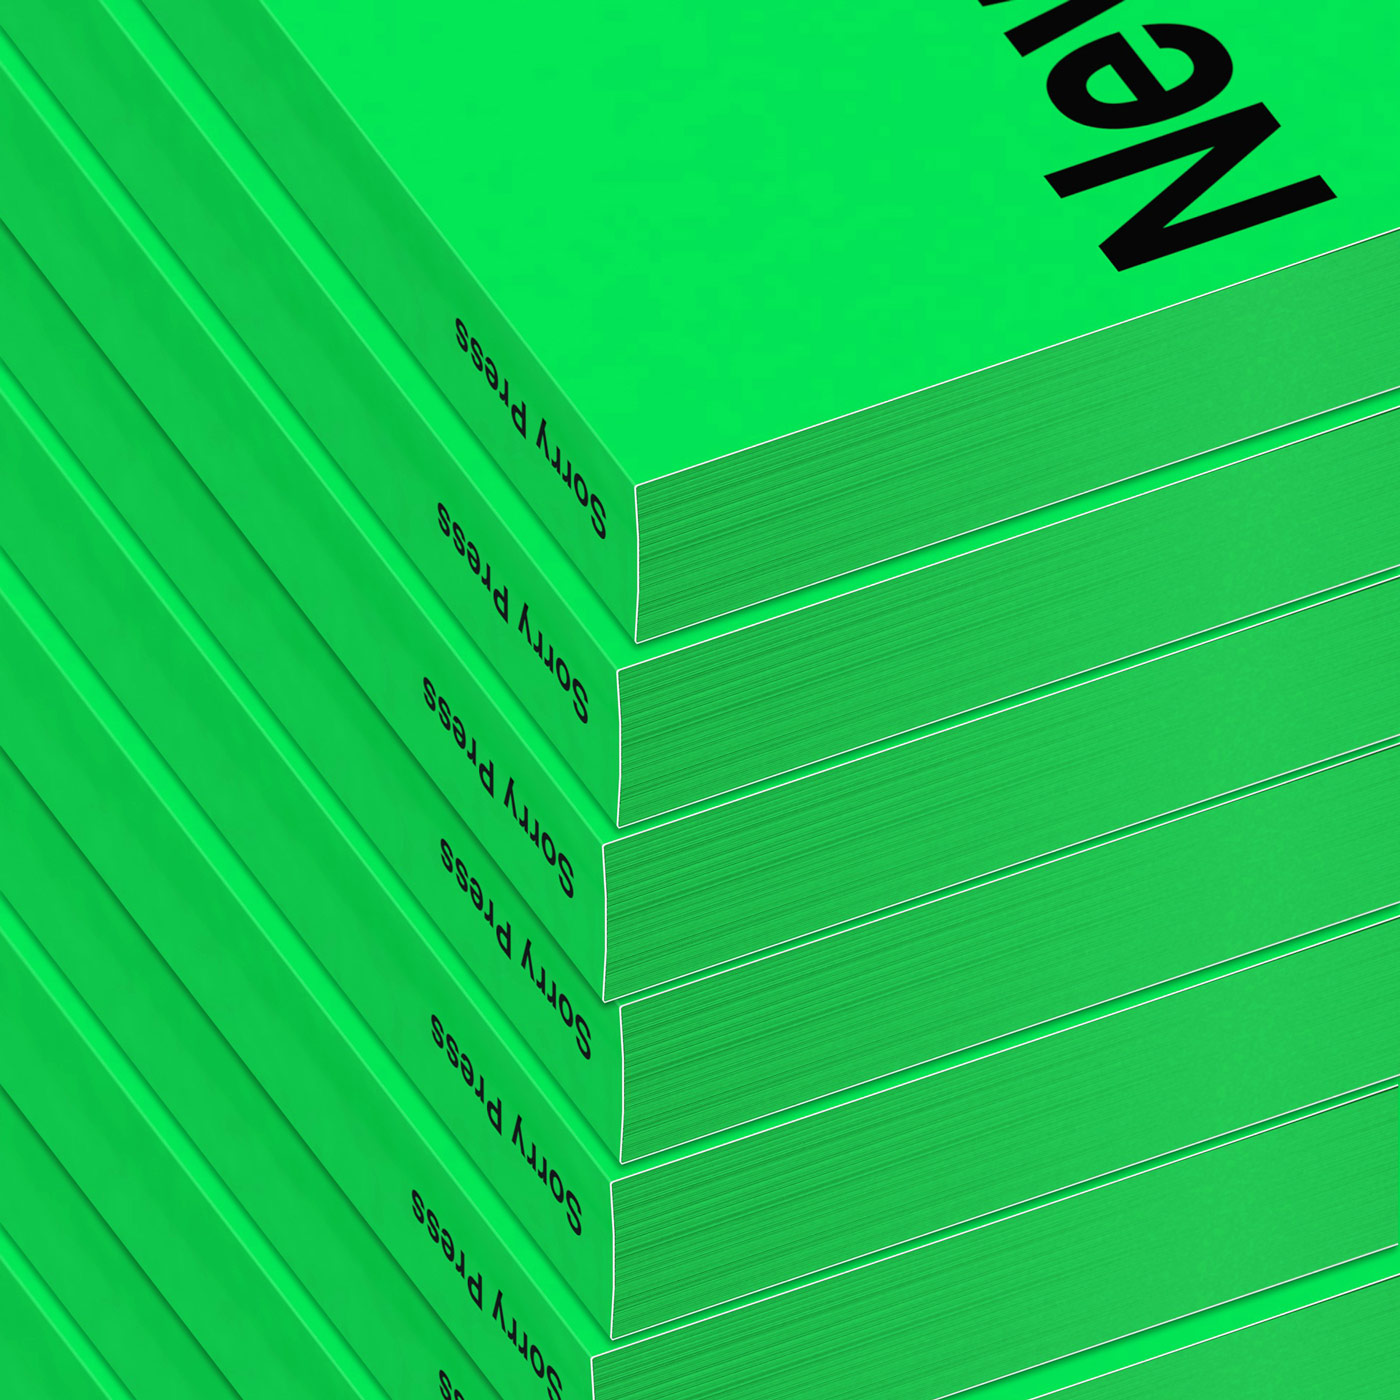 09 collide24 New Aesthetic 2 - Sophia Brinkgerd and Leonhard Laupichler celebrate the release of New Aesthetic 2, this time in collaboration with publishing house Sorry Press